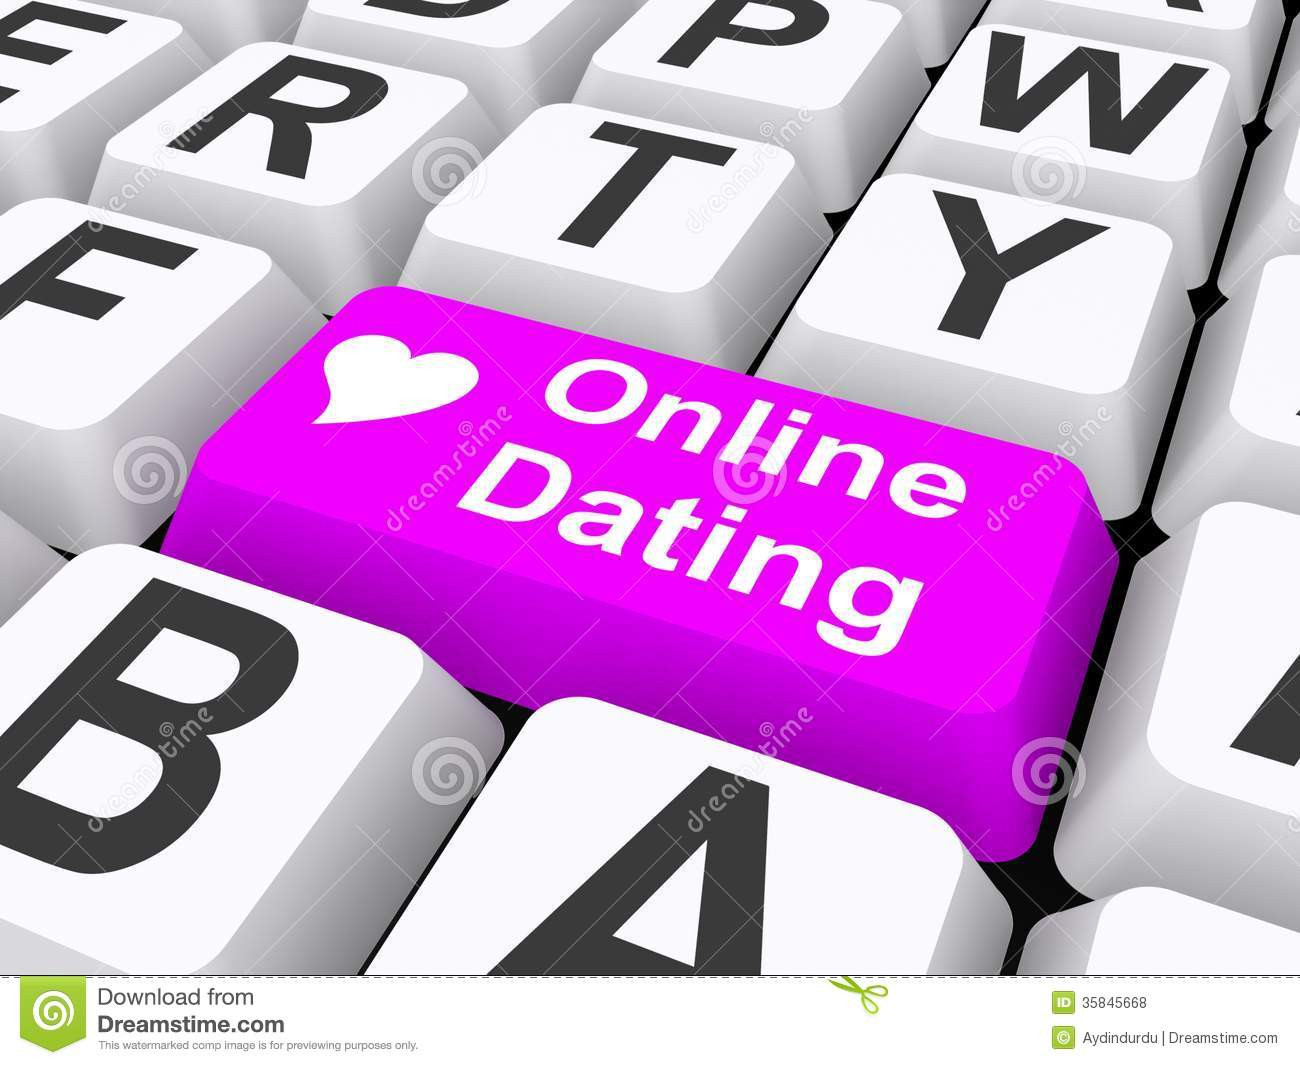 online dating sites | PeopleSearchesBlog.com – PPLSearch.com ...